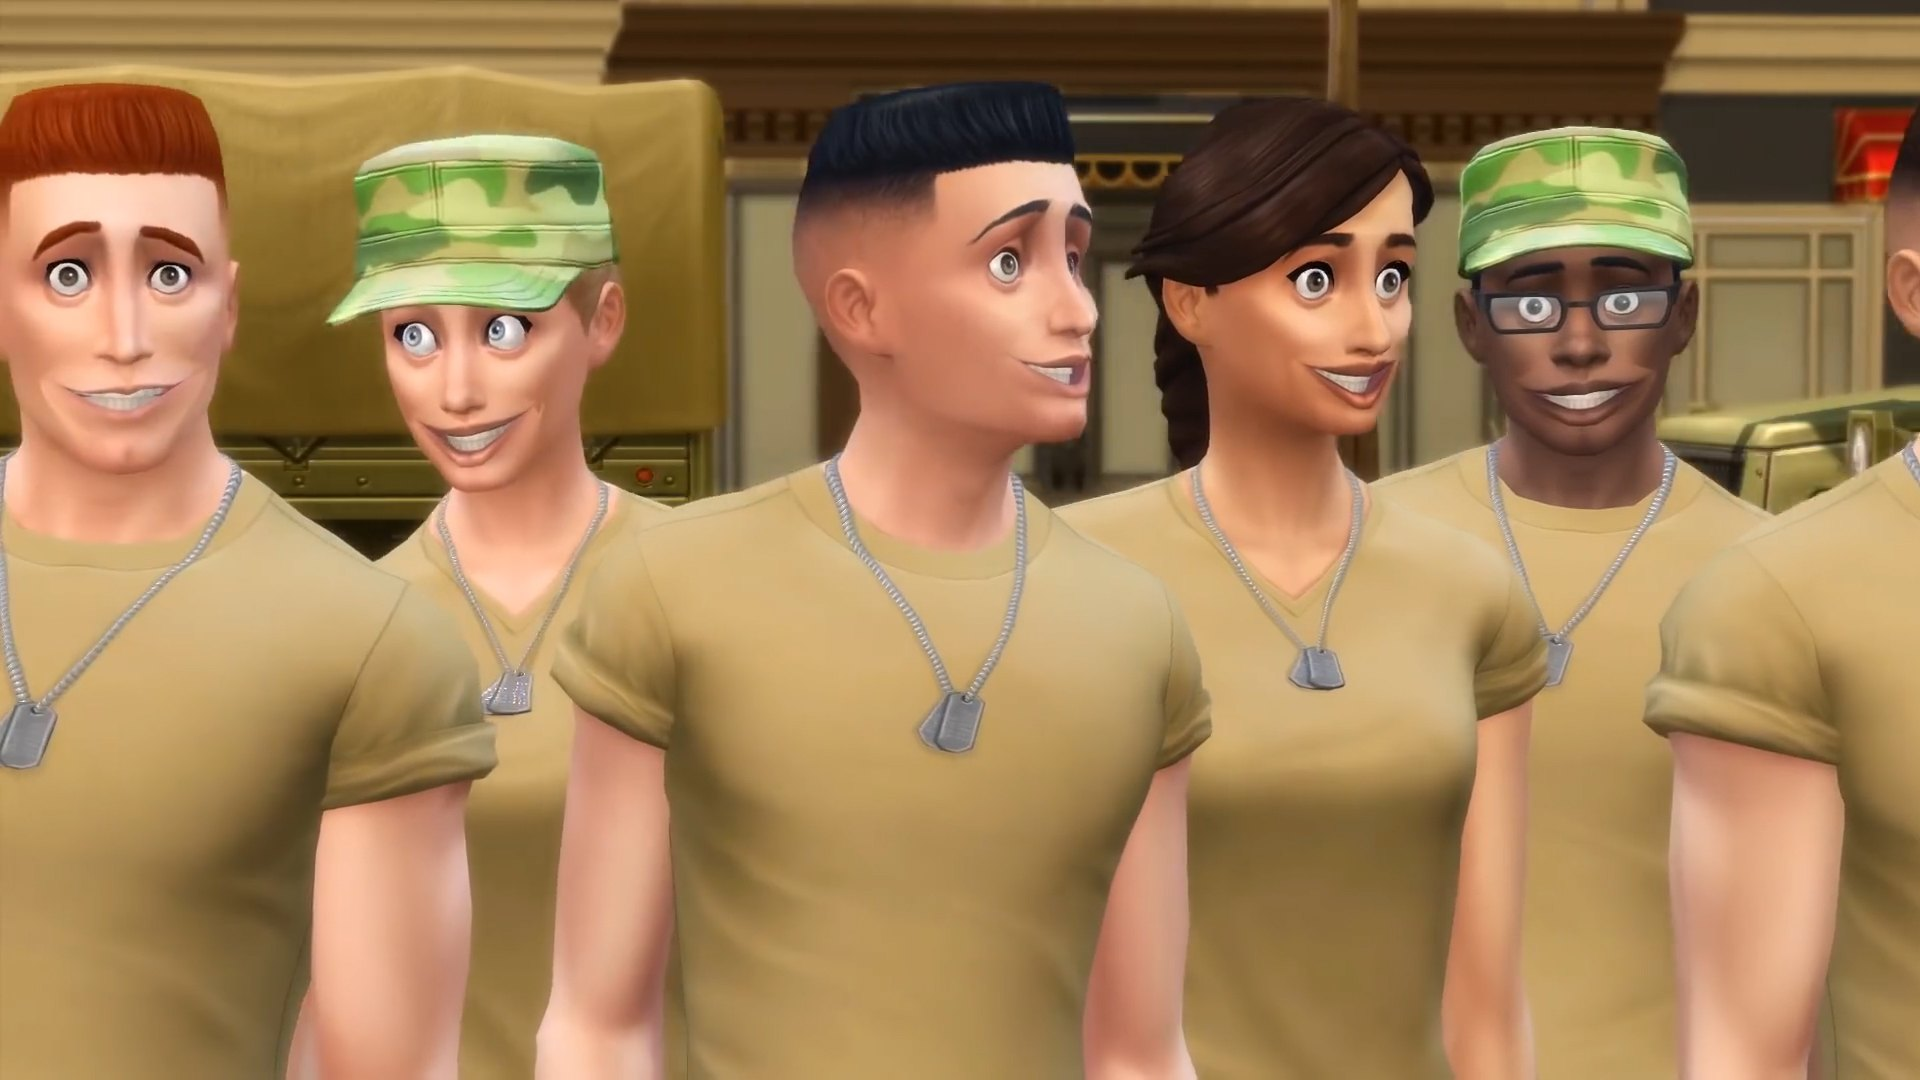 The Sims 4 Strangerville - new military recruits for the military base